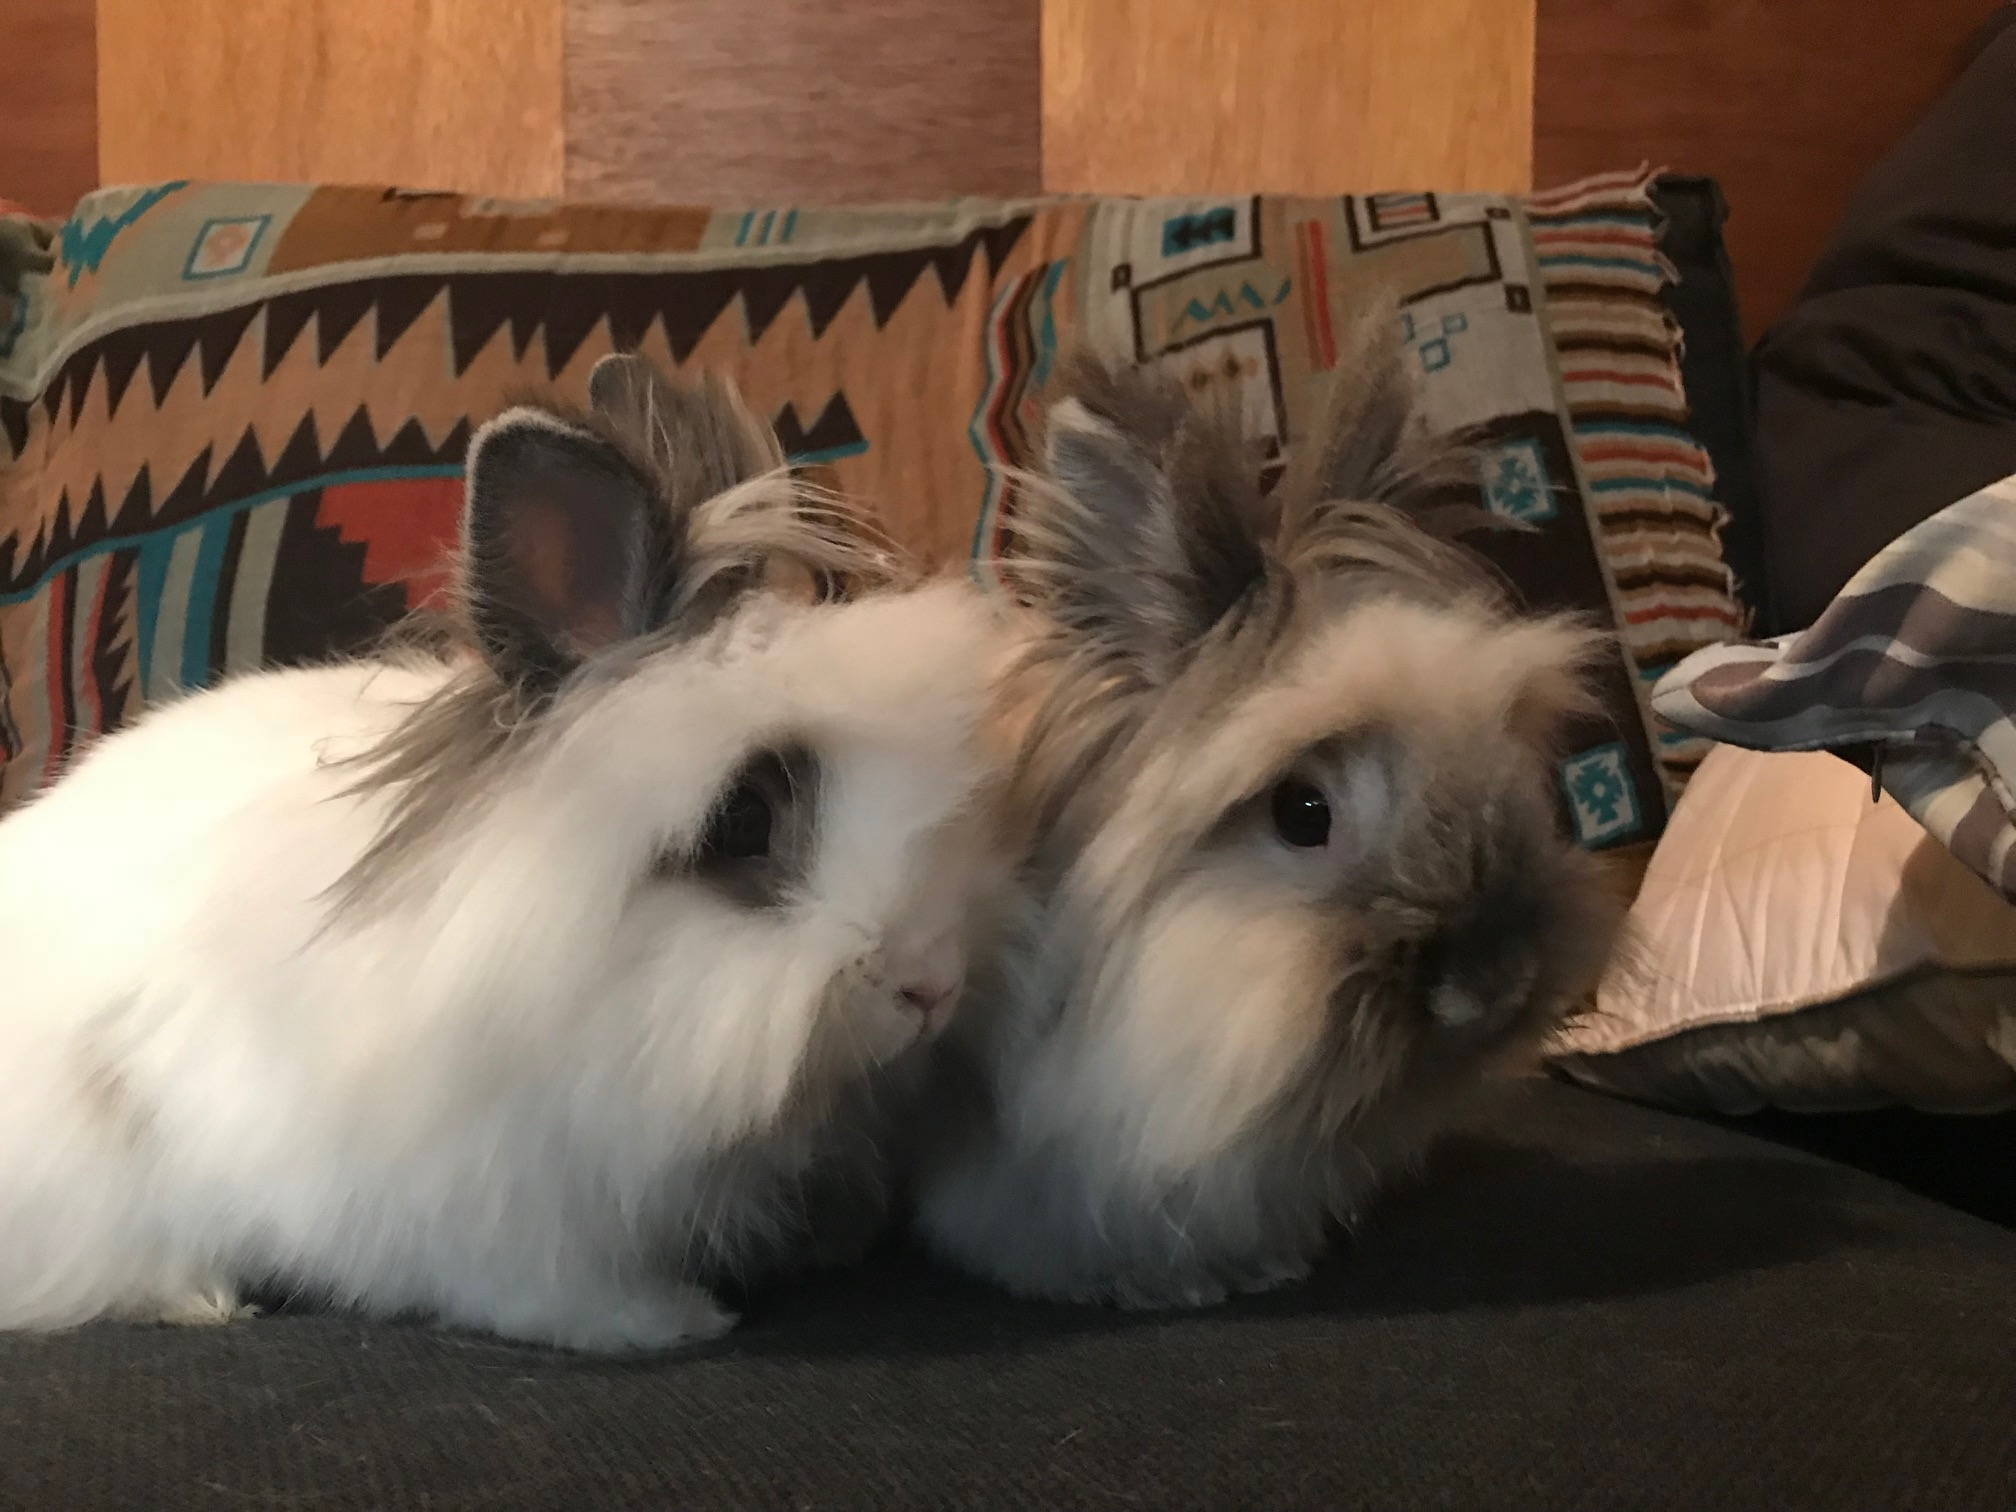 Penelope and Ginger